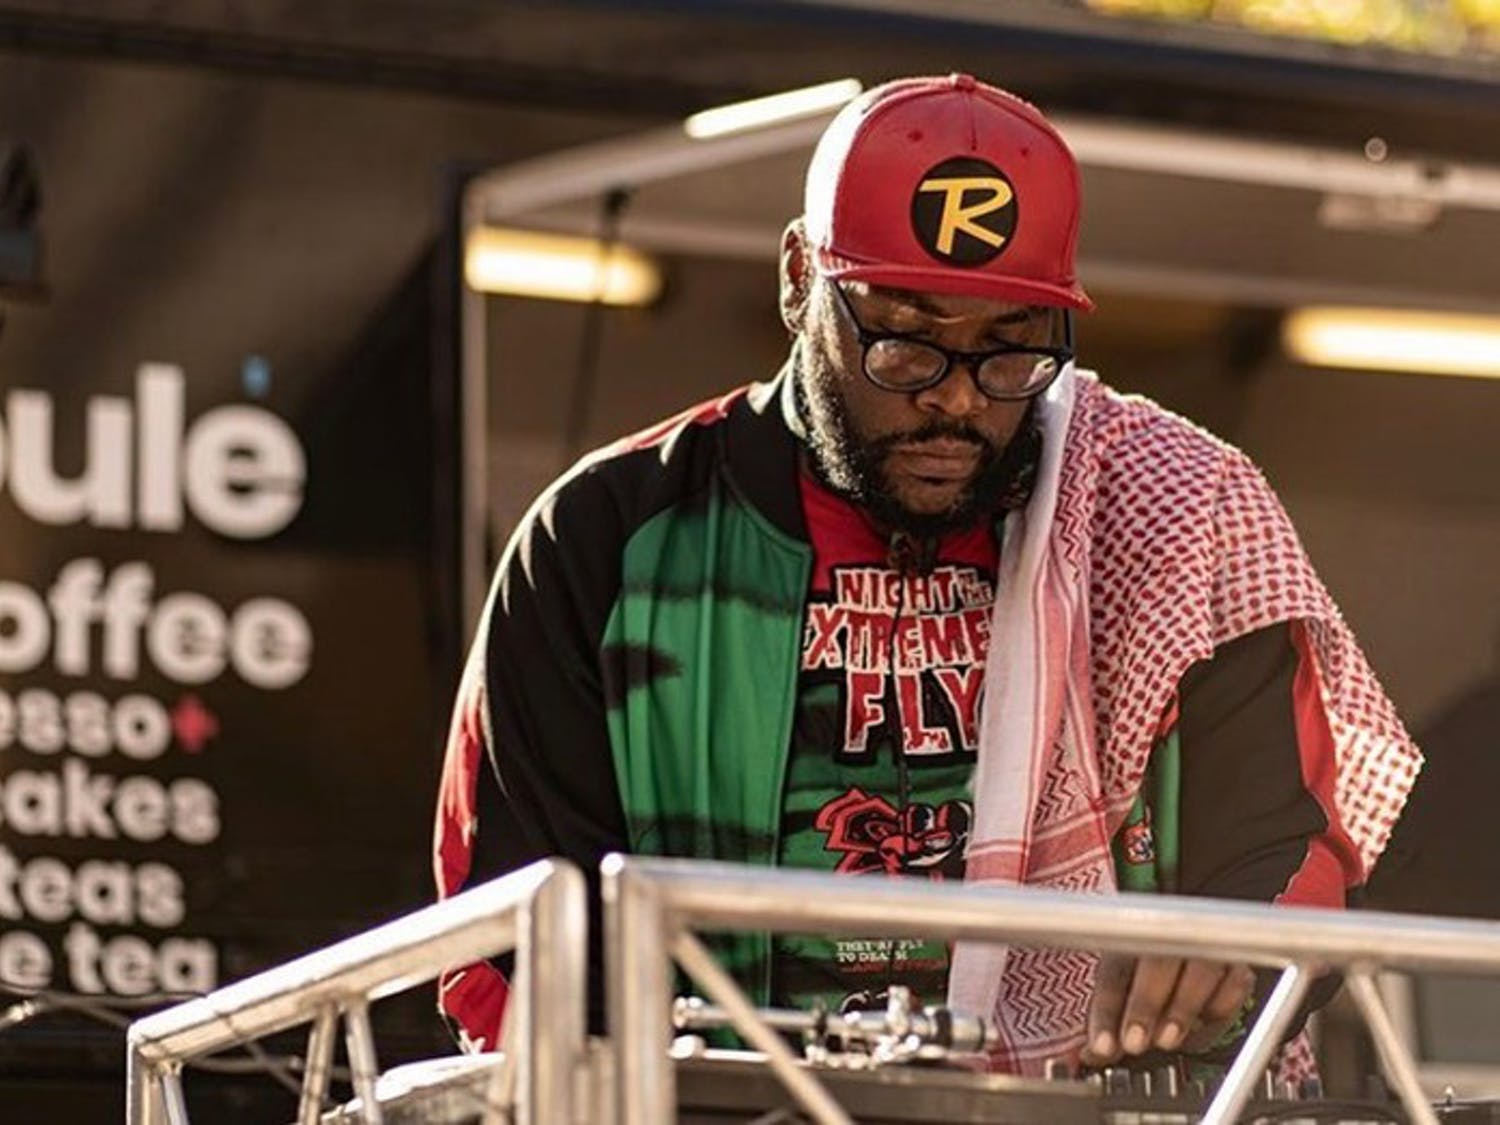 Darian Bethea, known by his stage name Voodoo Child, DJs in front of the Soulé Coffee Truck in Soda City.